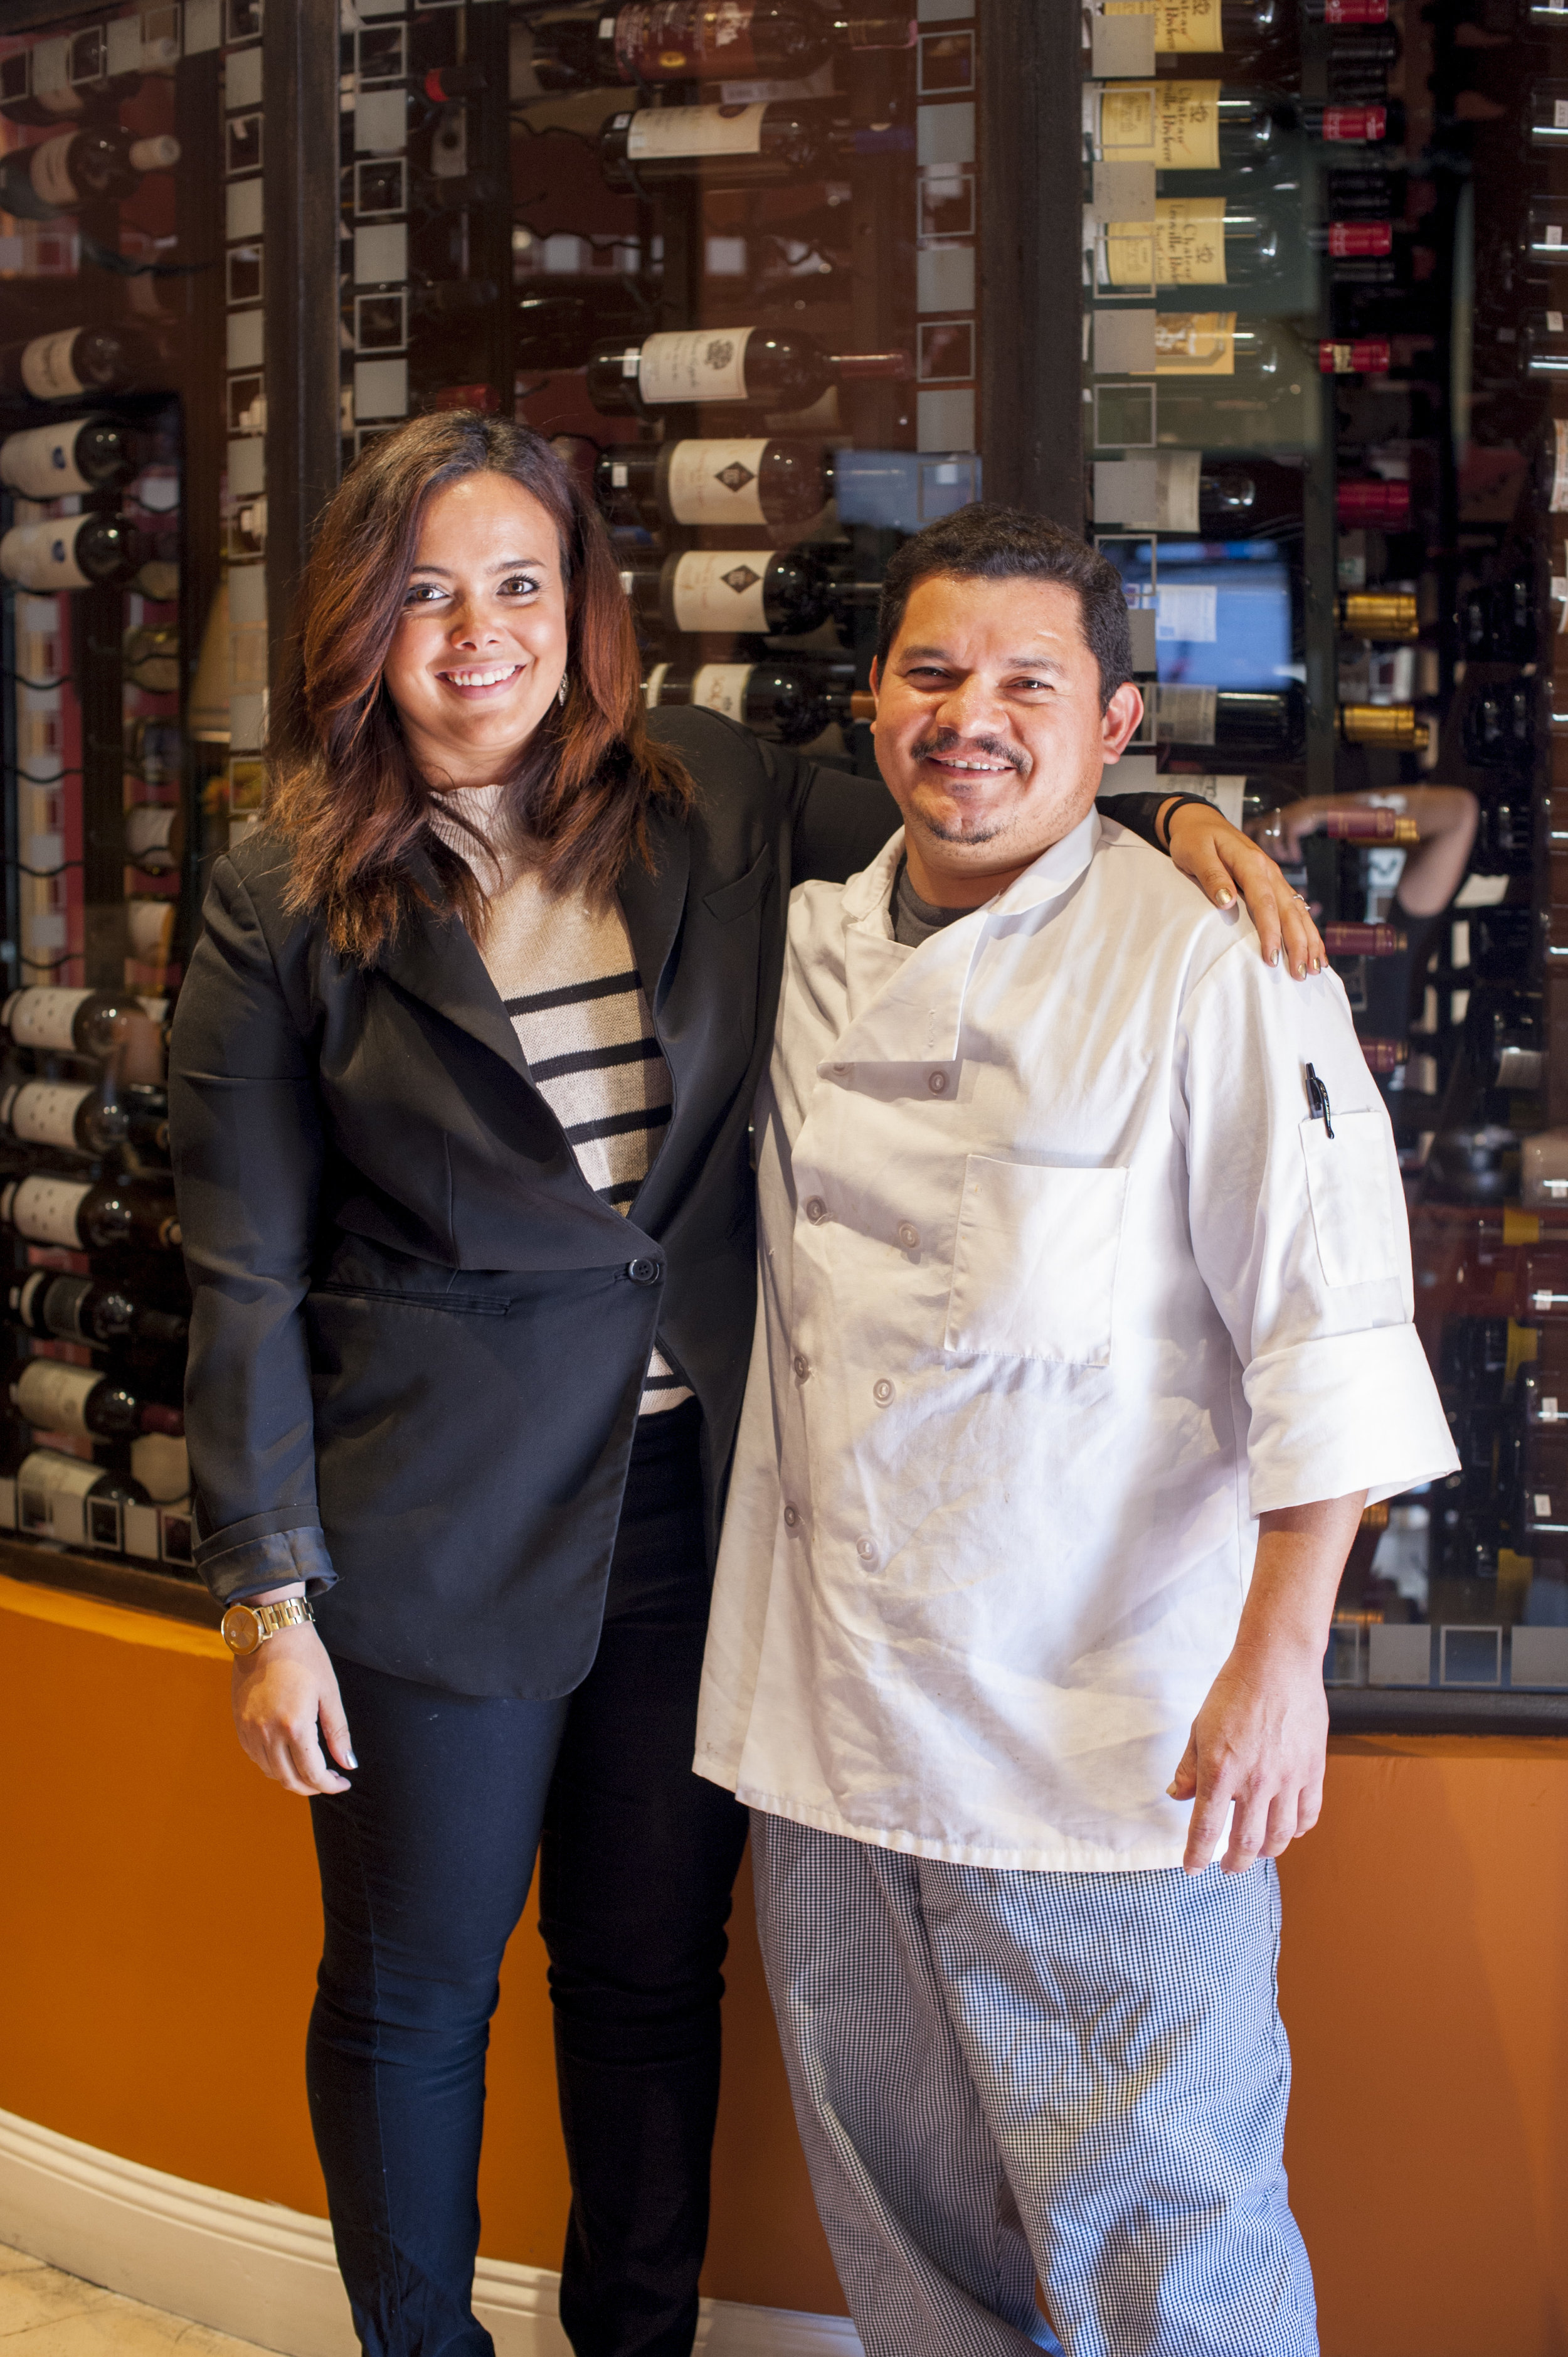 Mac's Catering Manager Leanne Gelish and Executive Chef Rafael Salmeron stand before the numerous wine offerings available the Huntington village steakhouse.